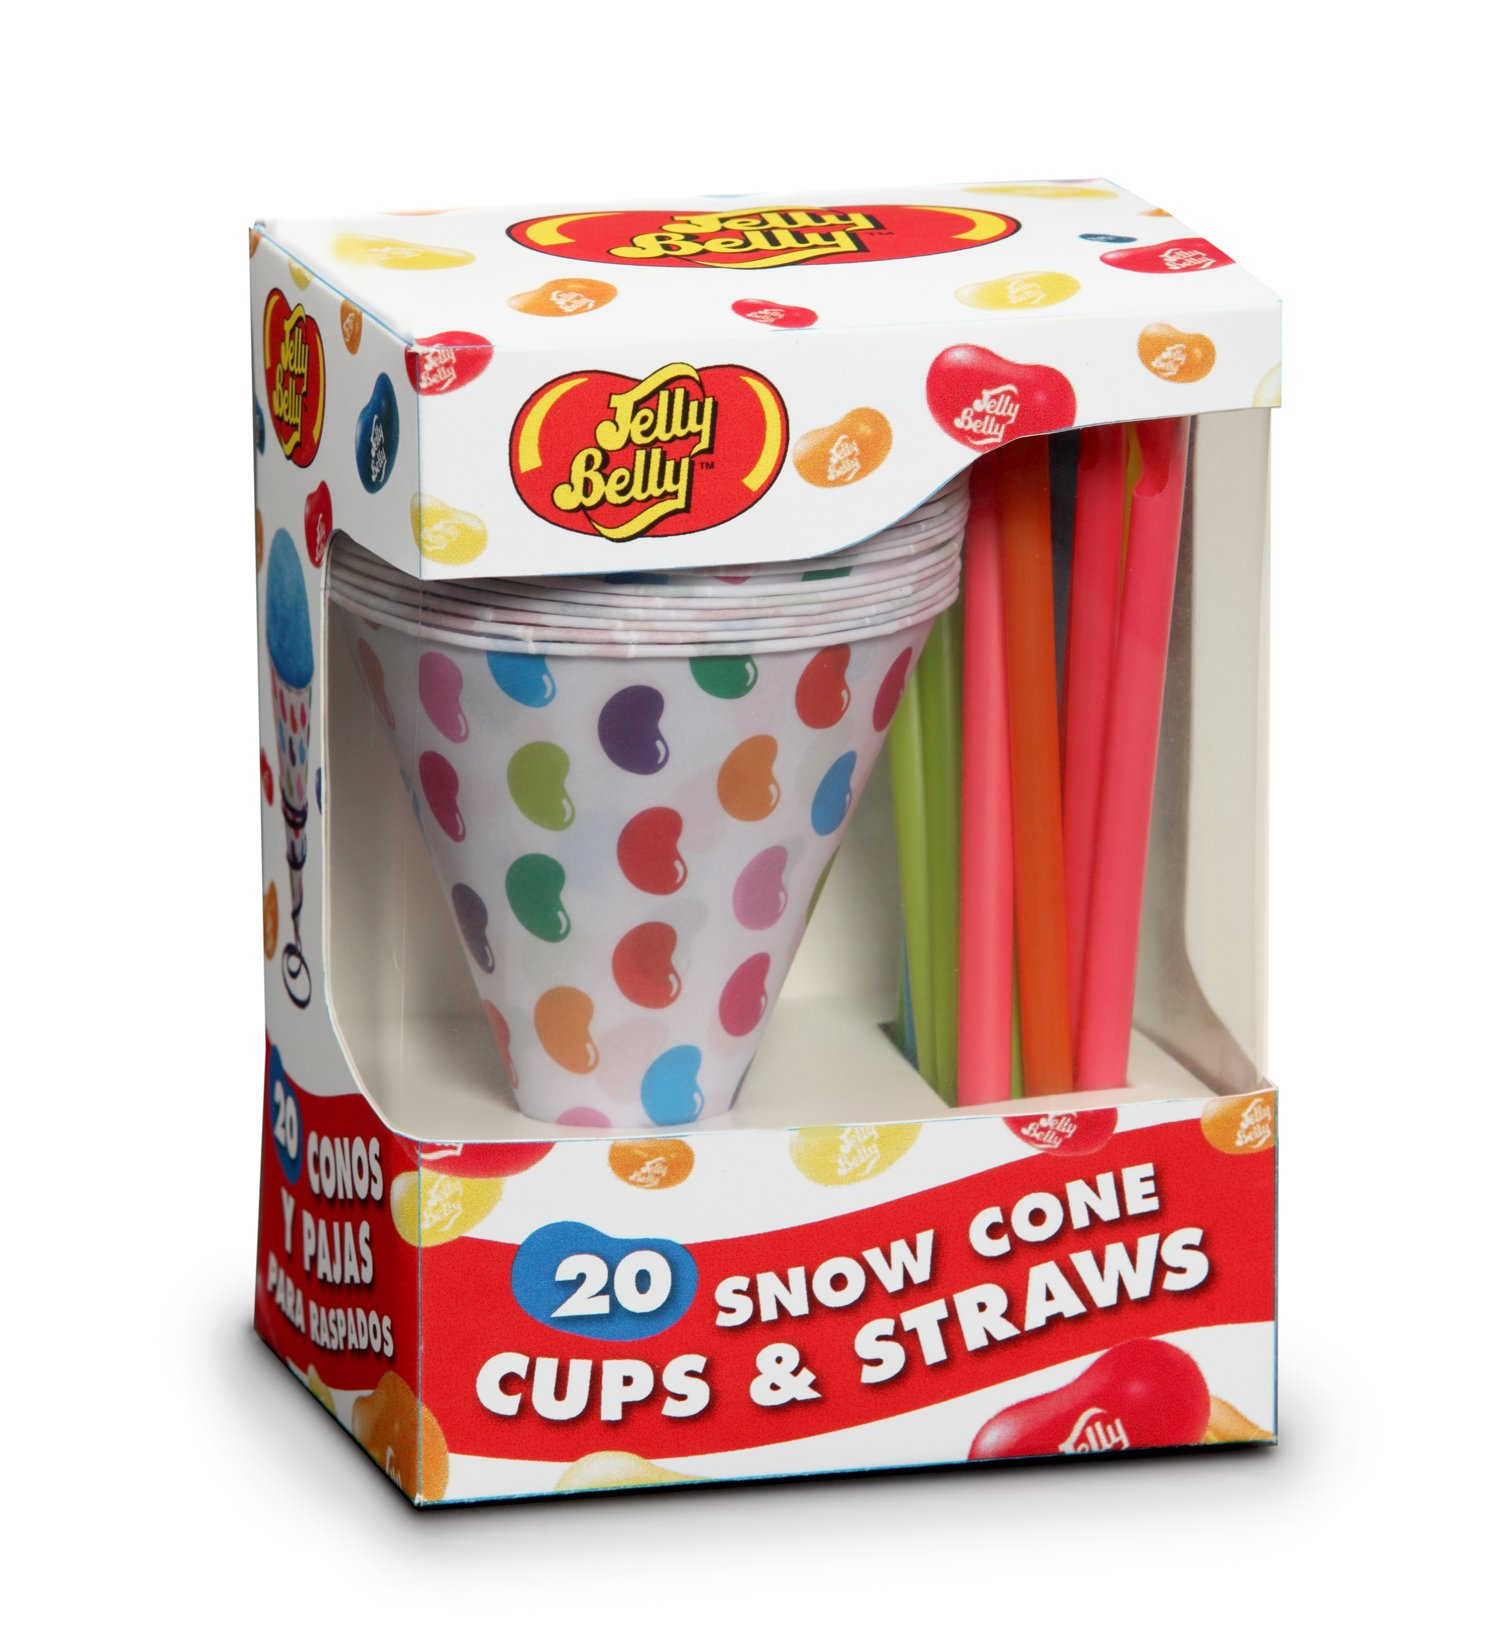 Jelly Belly JB15928 Disposable Snow Cone Cups and Straws, 20-Pack, Multicolored (Discontinued by Manufacturer)